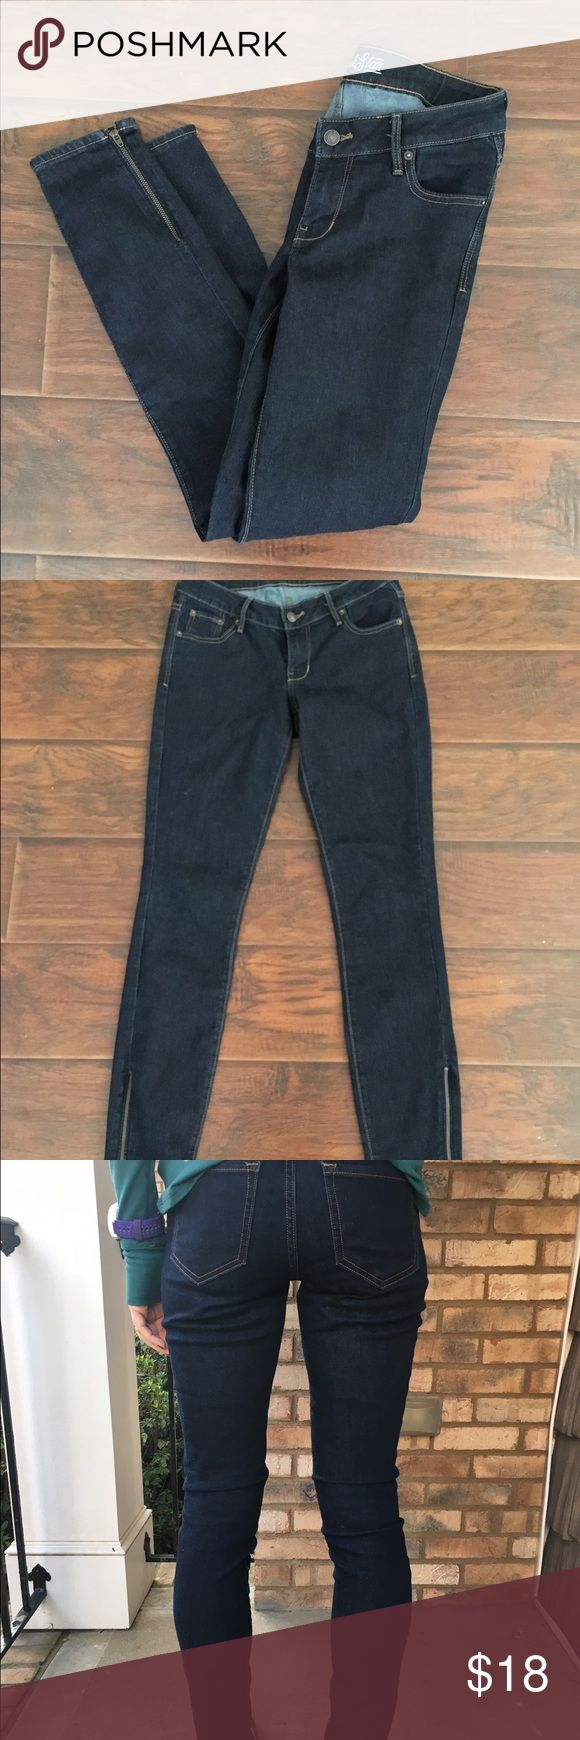 Dark blue denim rockstar jeans Brand new! Only worn for the pictures! Flawless dark denim jeans. Style is regular fit, The Rockstar jeans with zippers at the ankles. Super cute, soft, with a little stretch. Thanks for looking.💕 Old Navy Jeans Skinny